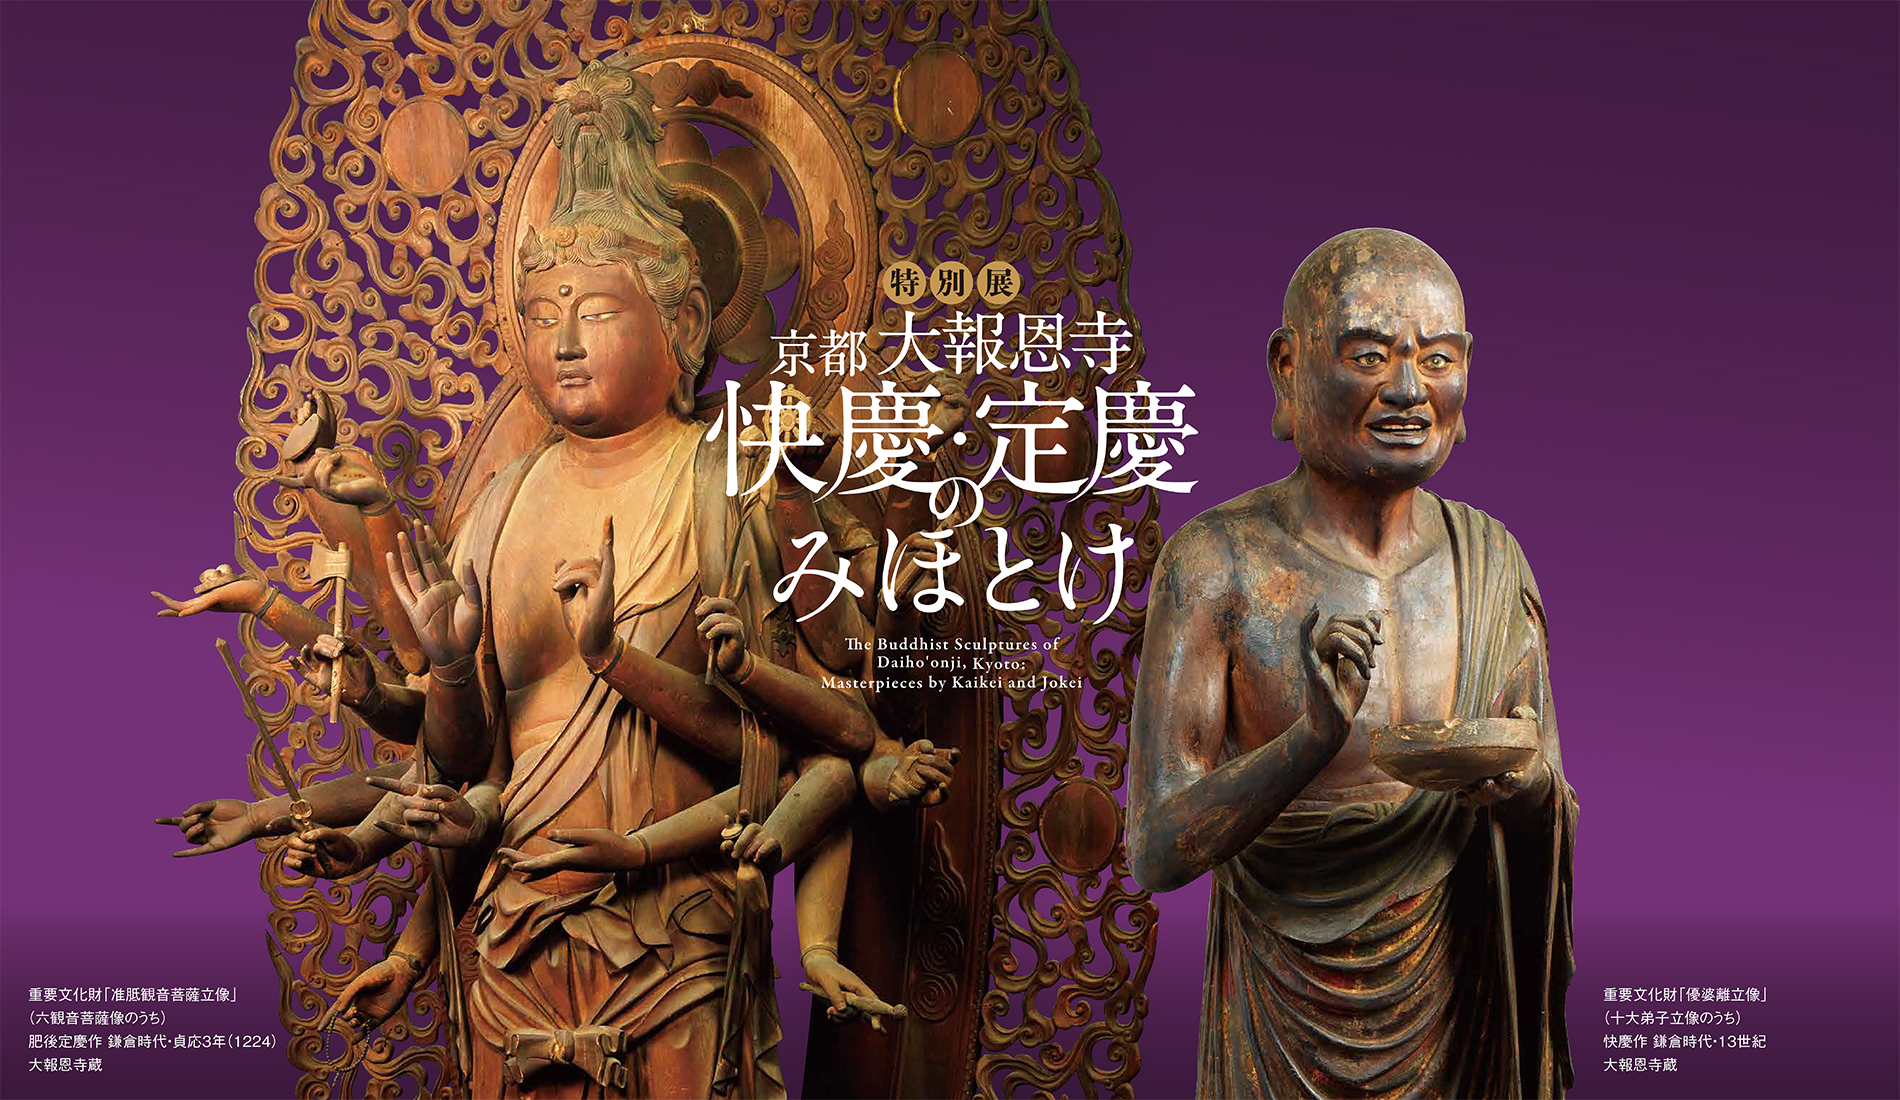 The Buddhist Sculptures of Daiho'onji, Kyoto: Masterpieces by Kaikei and Jokei